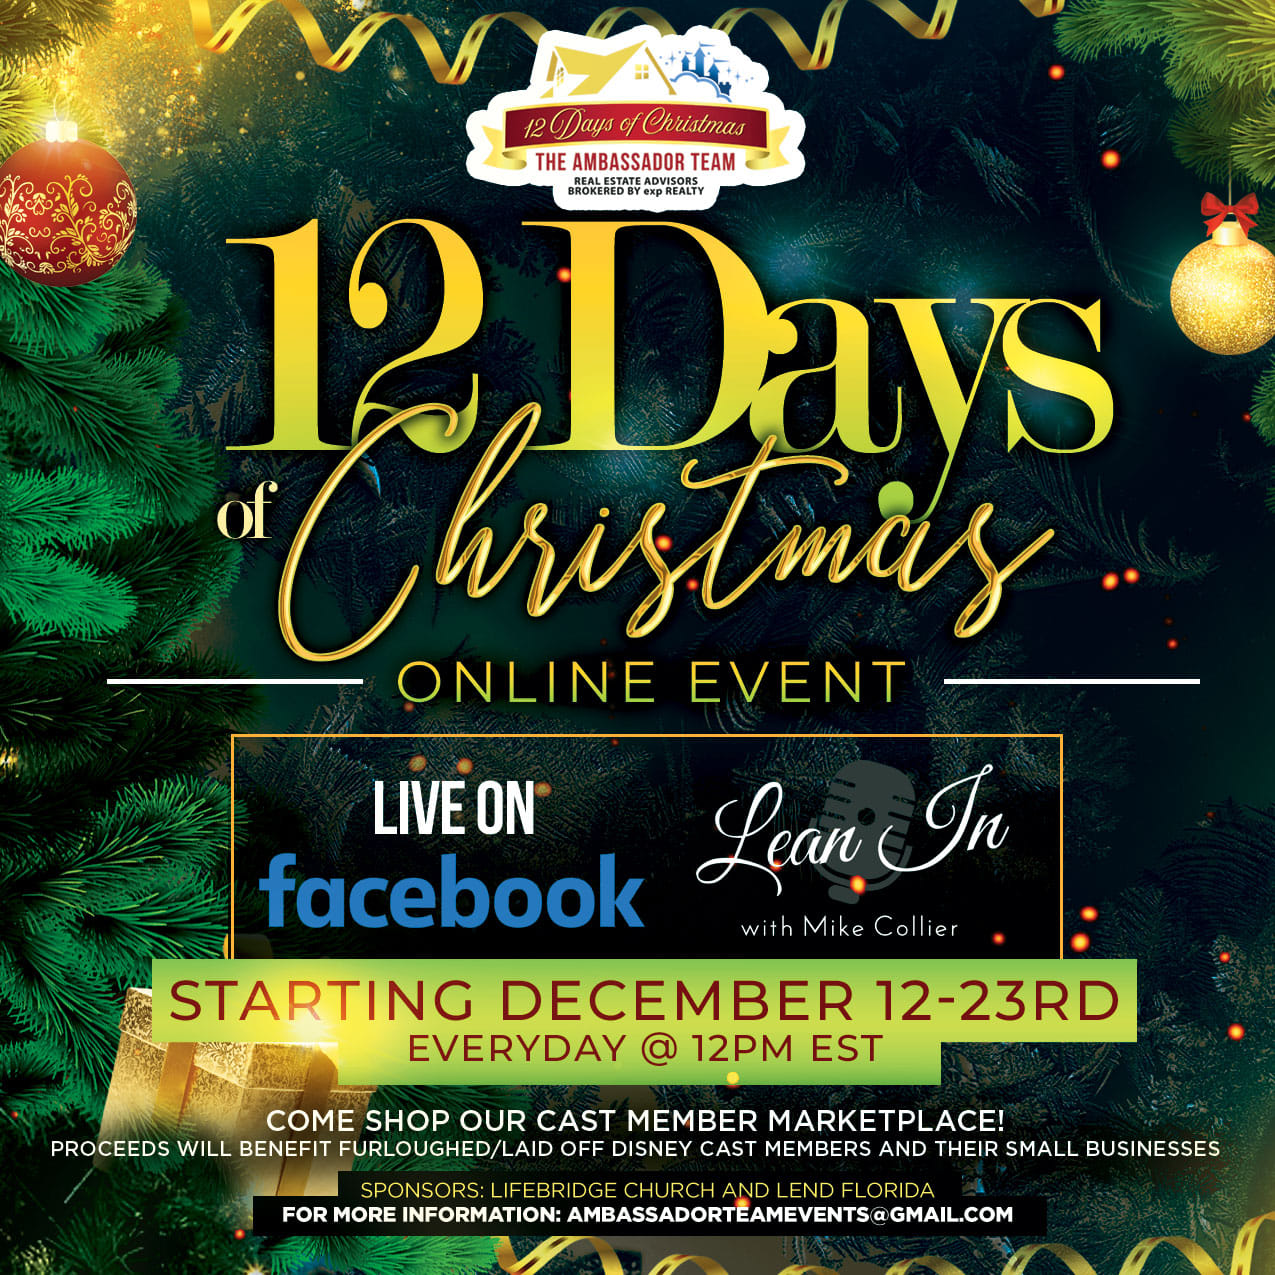 12 Days of Christmas Cast Member Marketplace All Things with Purpose Sarah Lemp